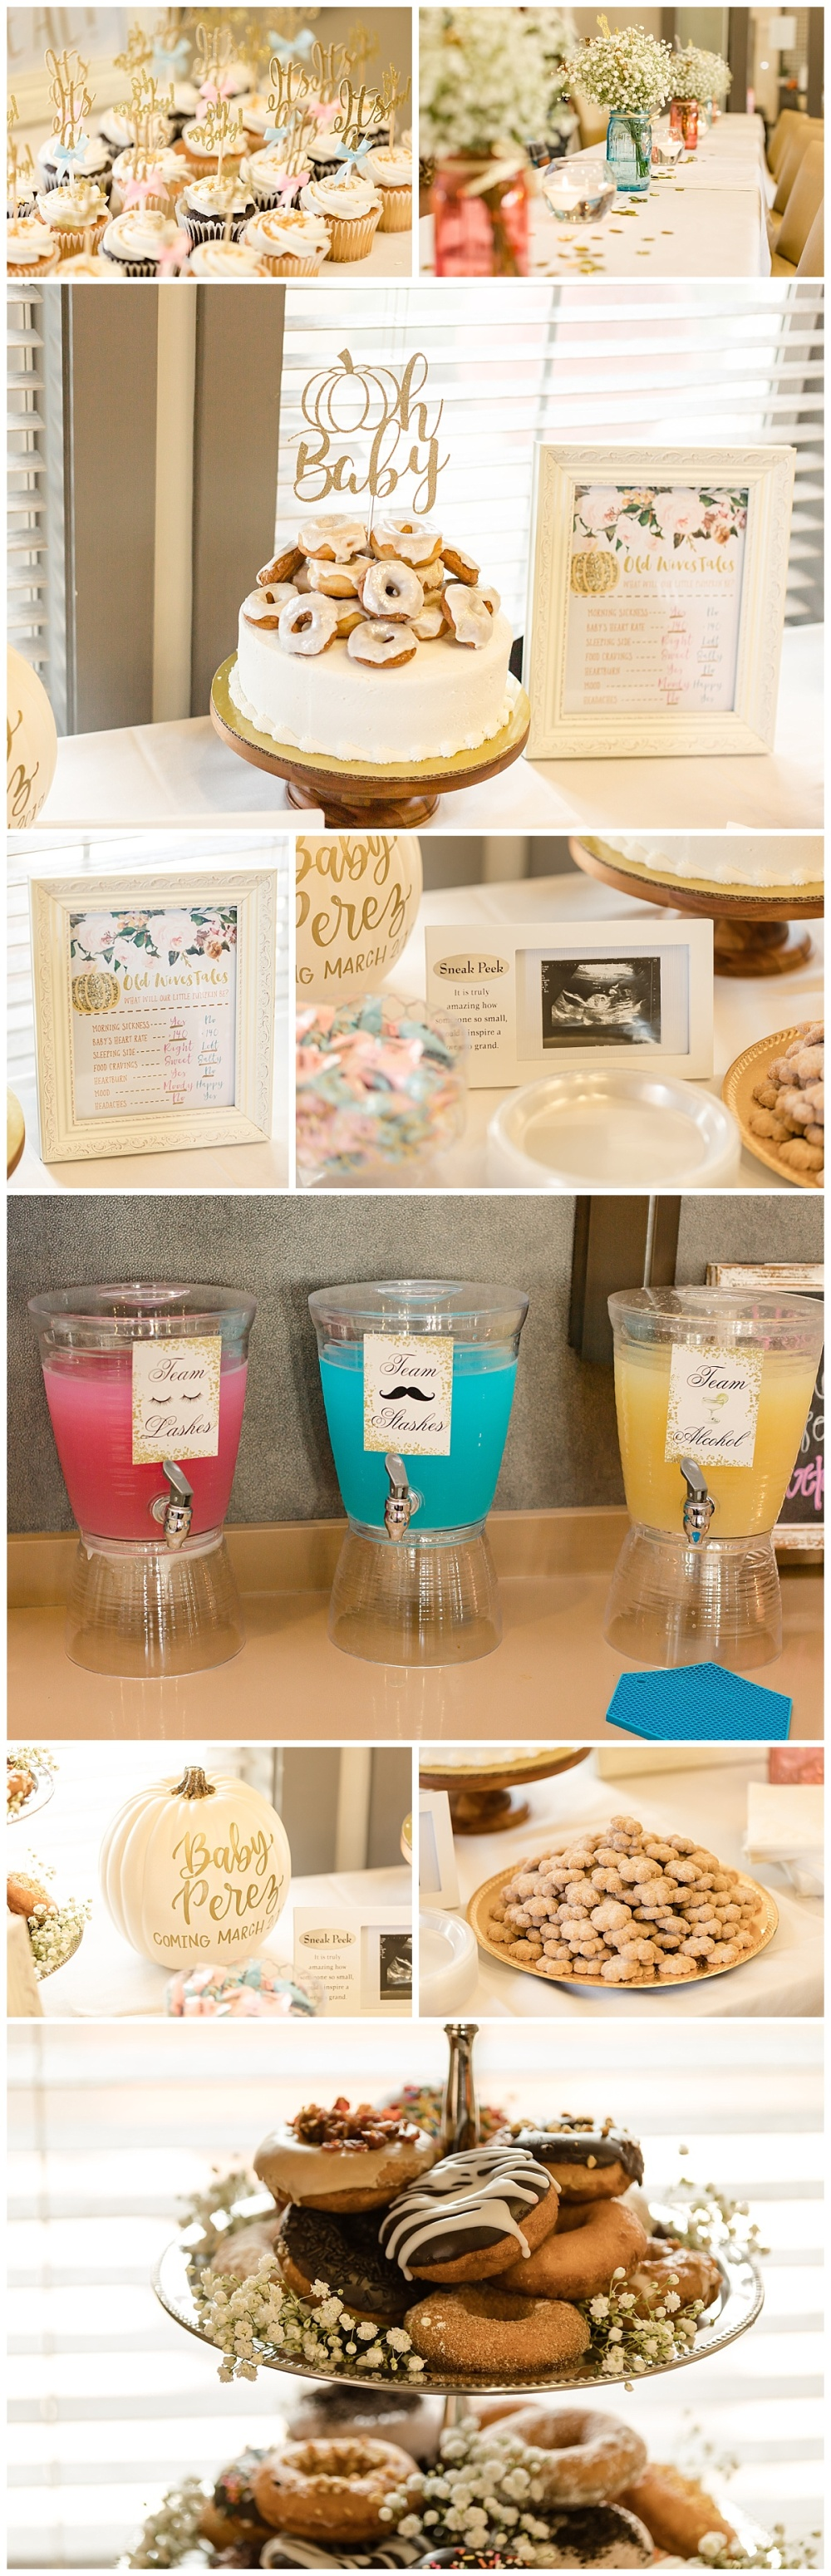 Gender-Reveal-Baby-Perez-November-Carly-Barton-Photography_0020.jpg